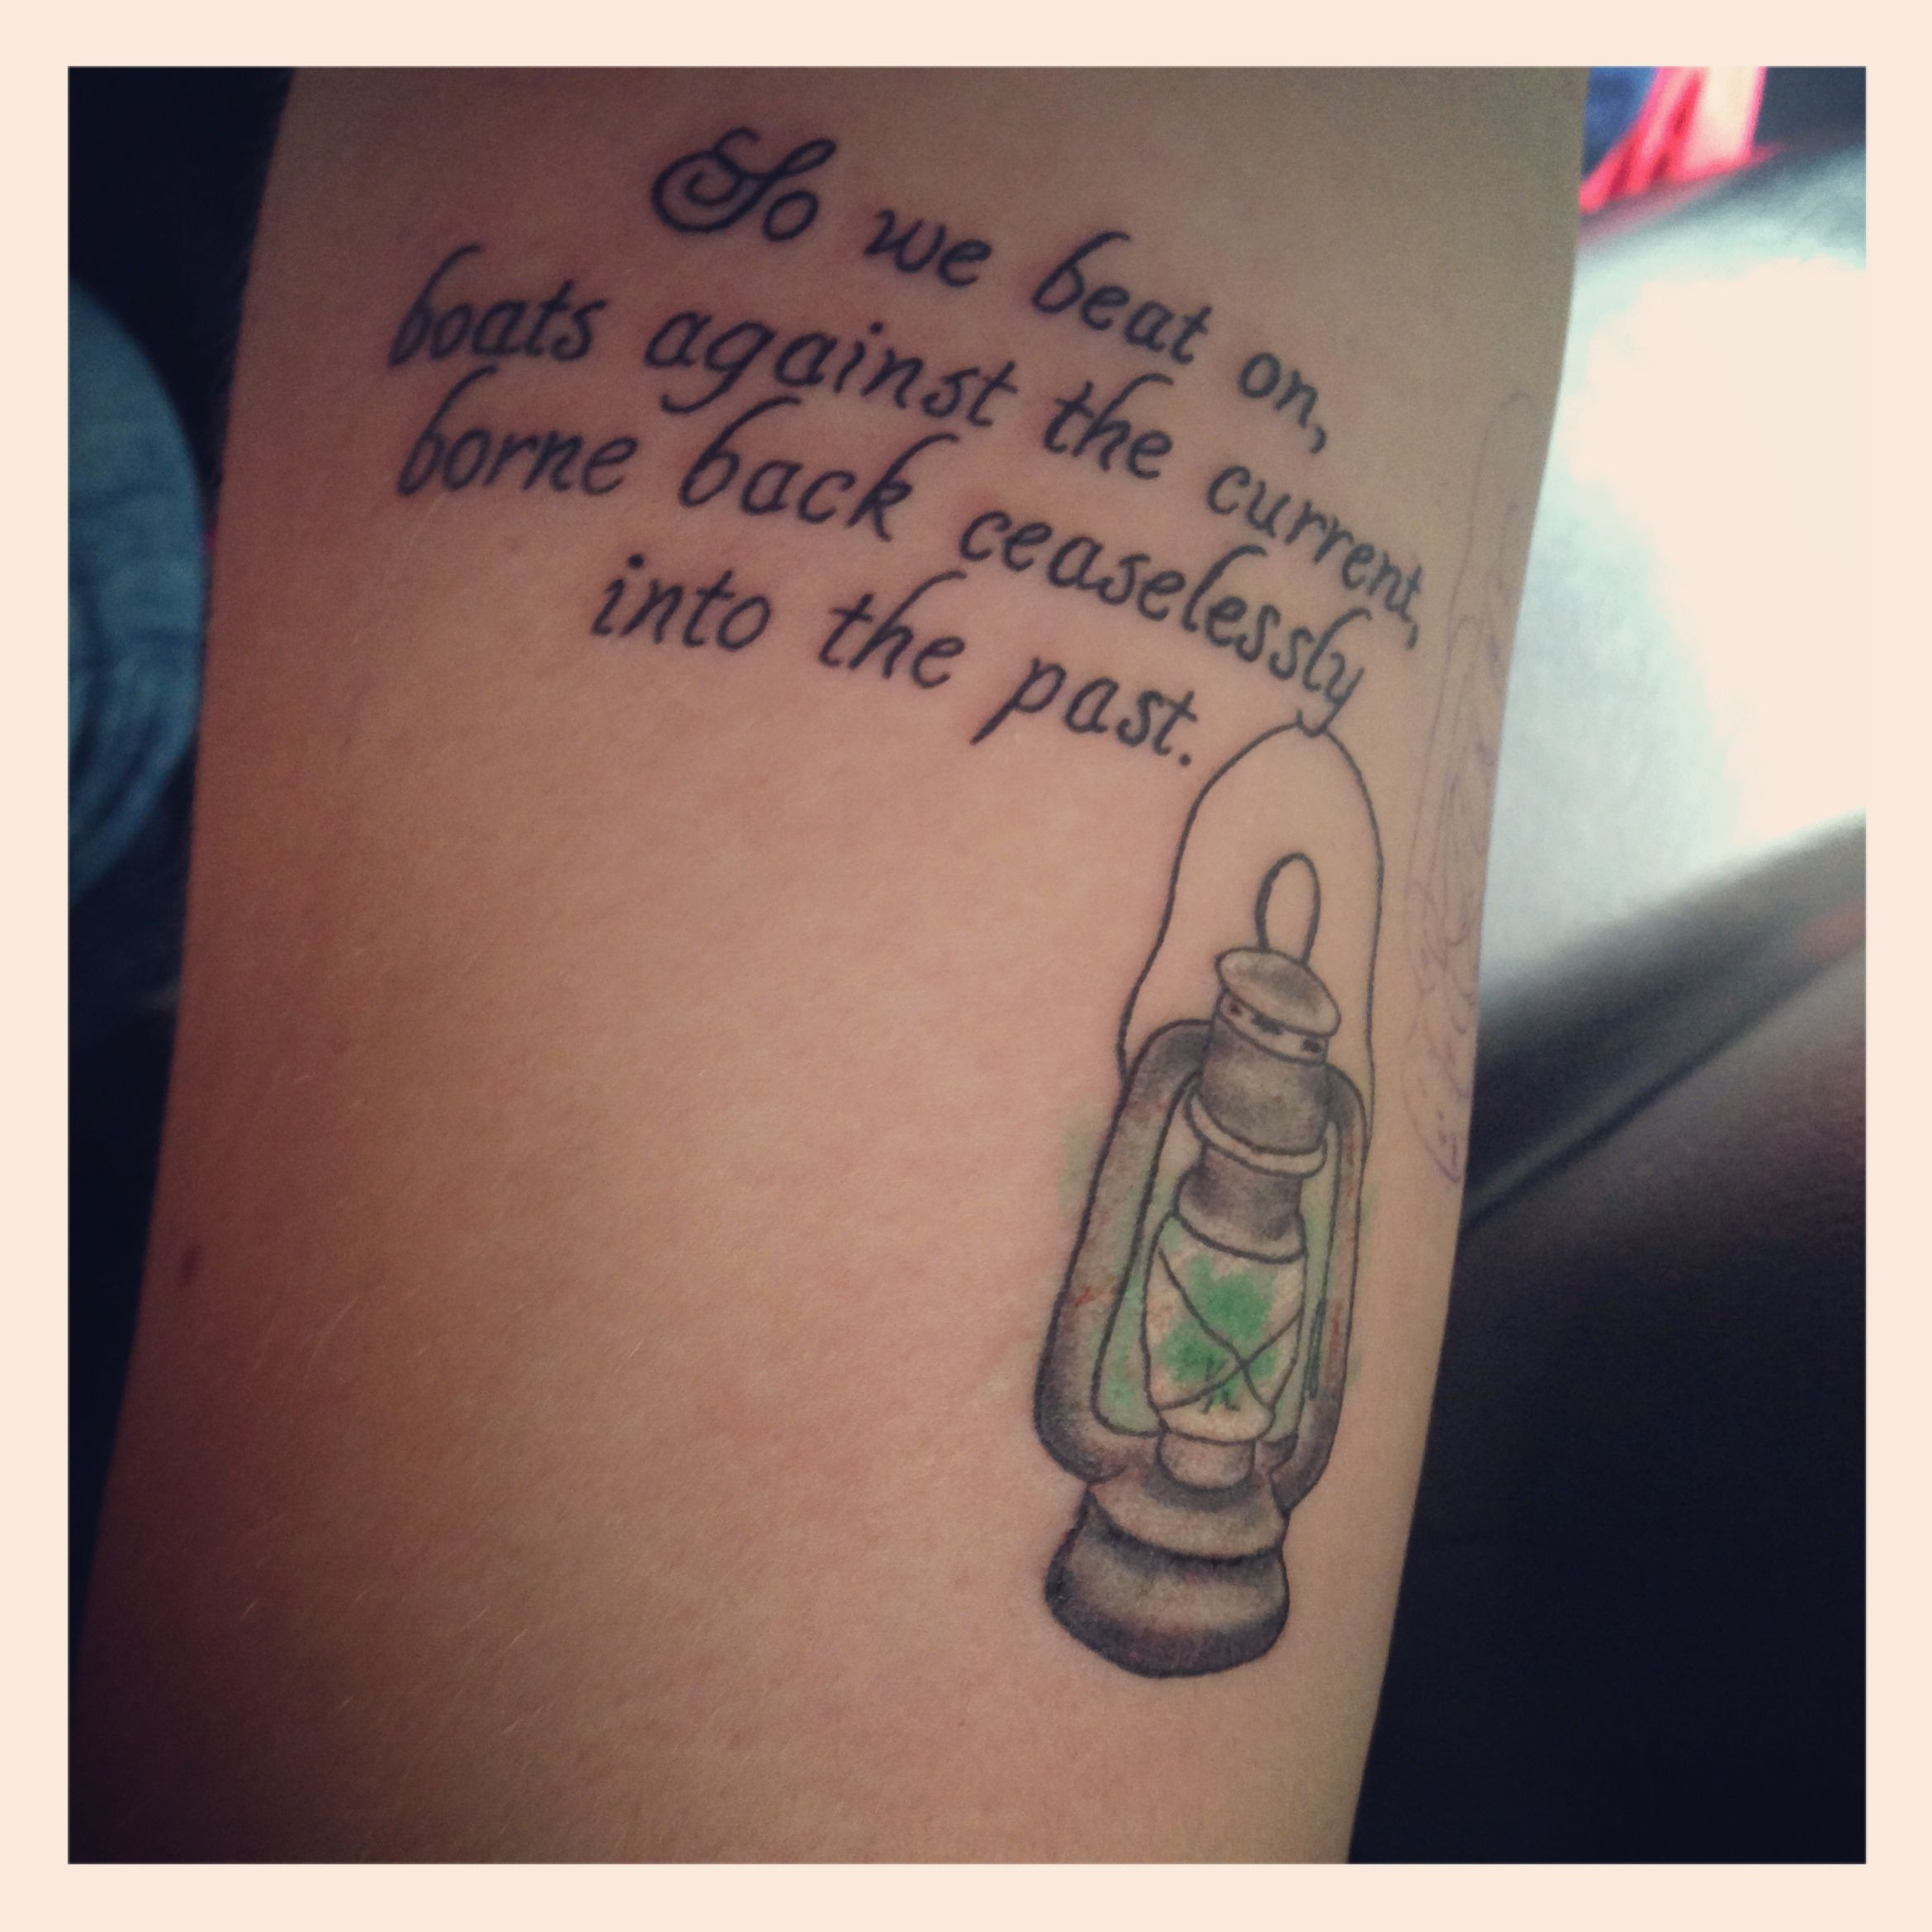 Green Light In The Great Gatsby Quotes: My Most Recent Tattoo. It Is The Last Line From The Great